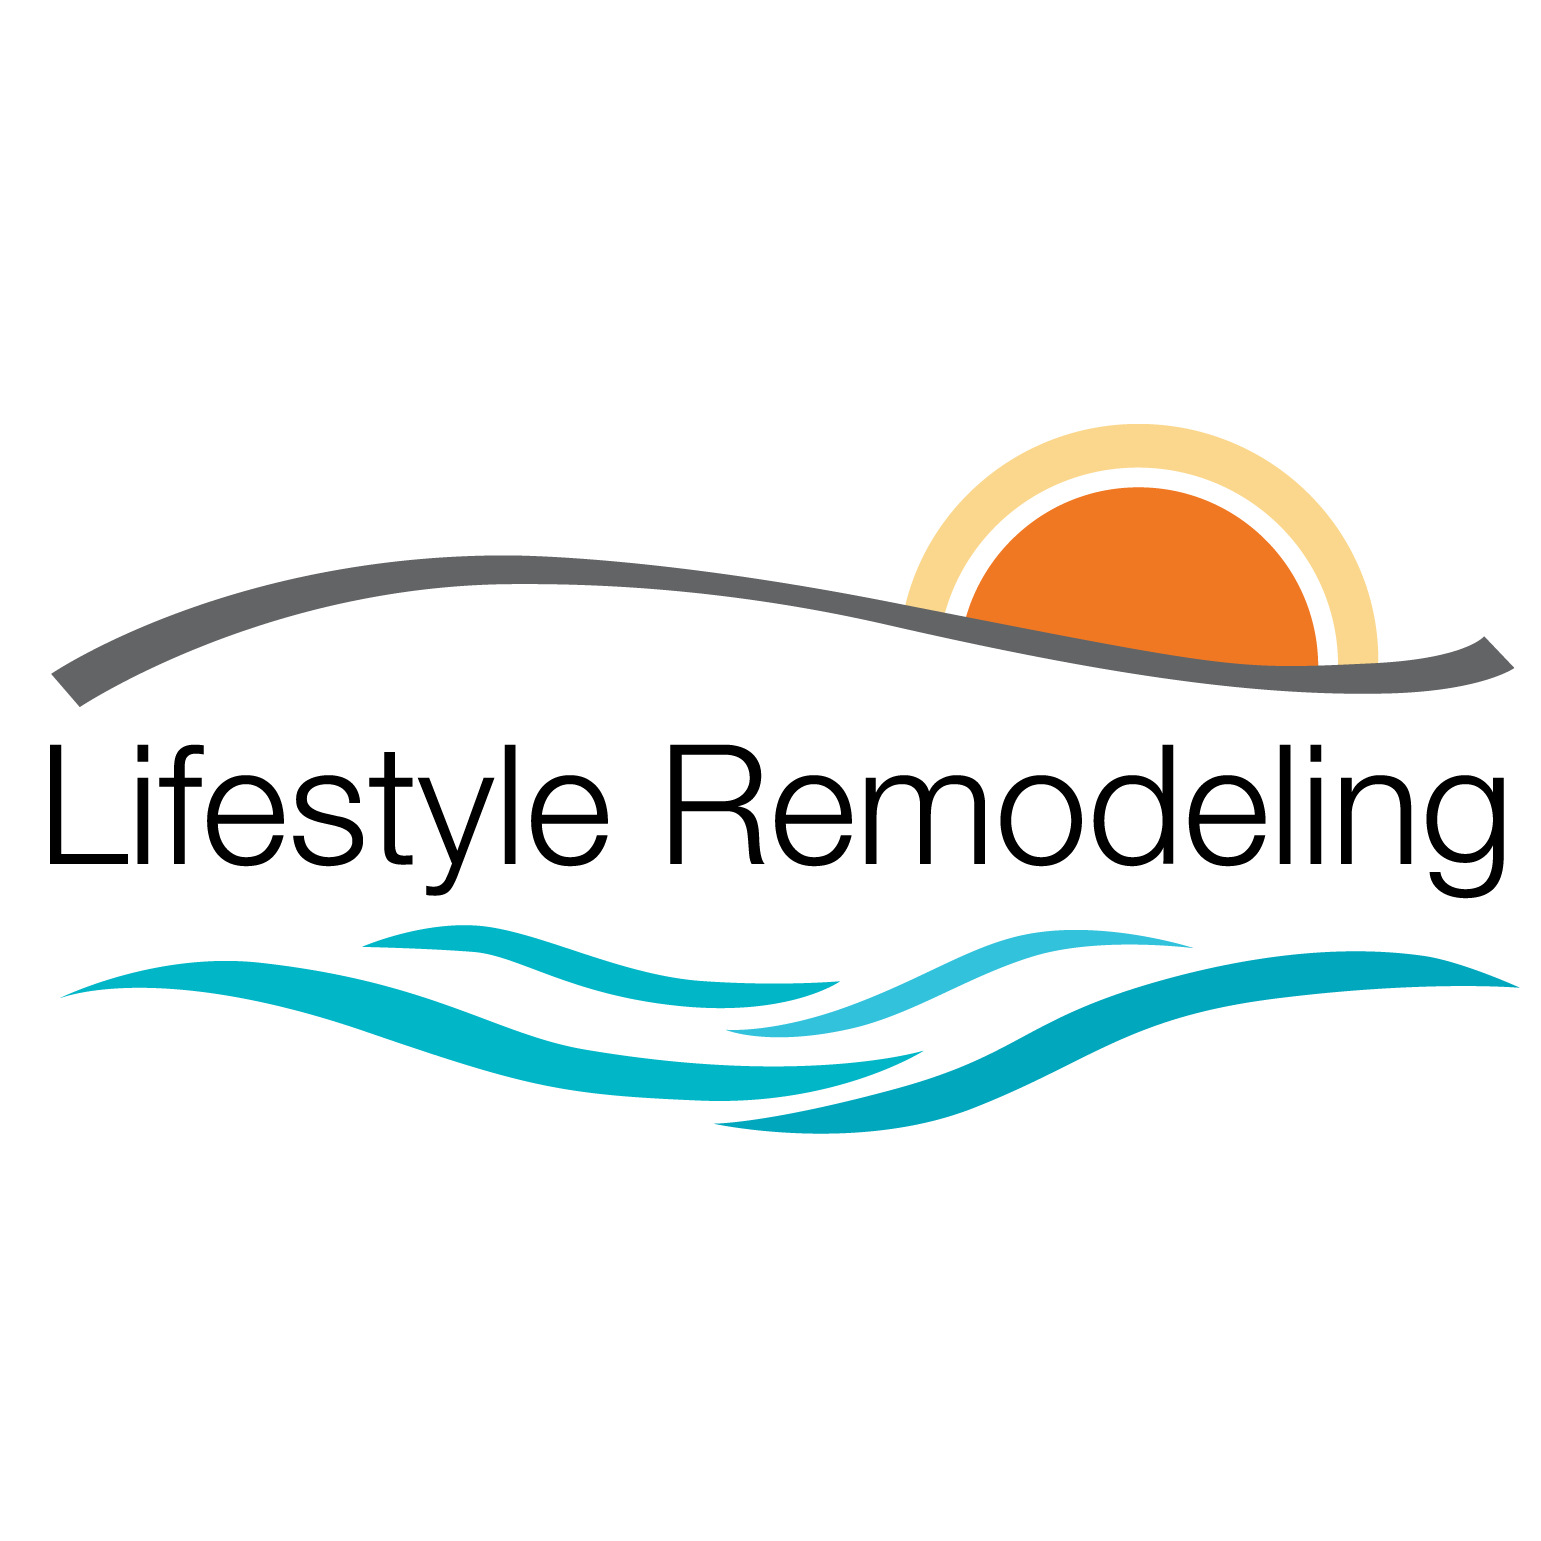 Lifestyle Remodeling - Tampa, FL 33634 - (813) 448-3711 | ShowMeLocal.com